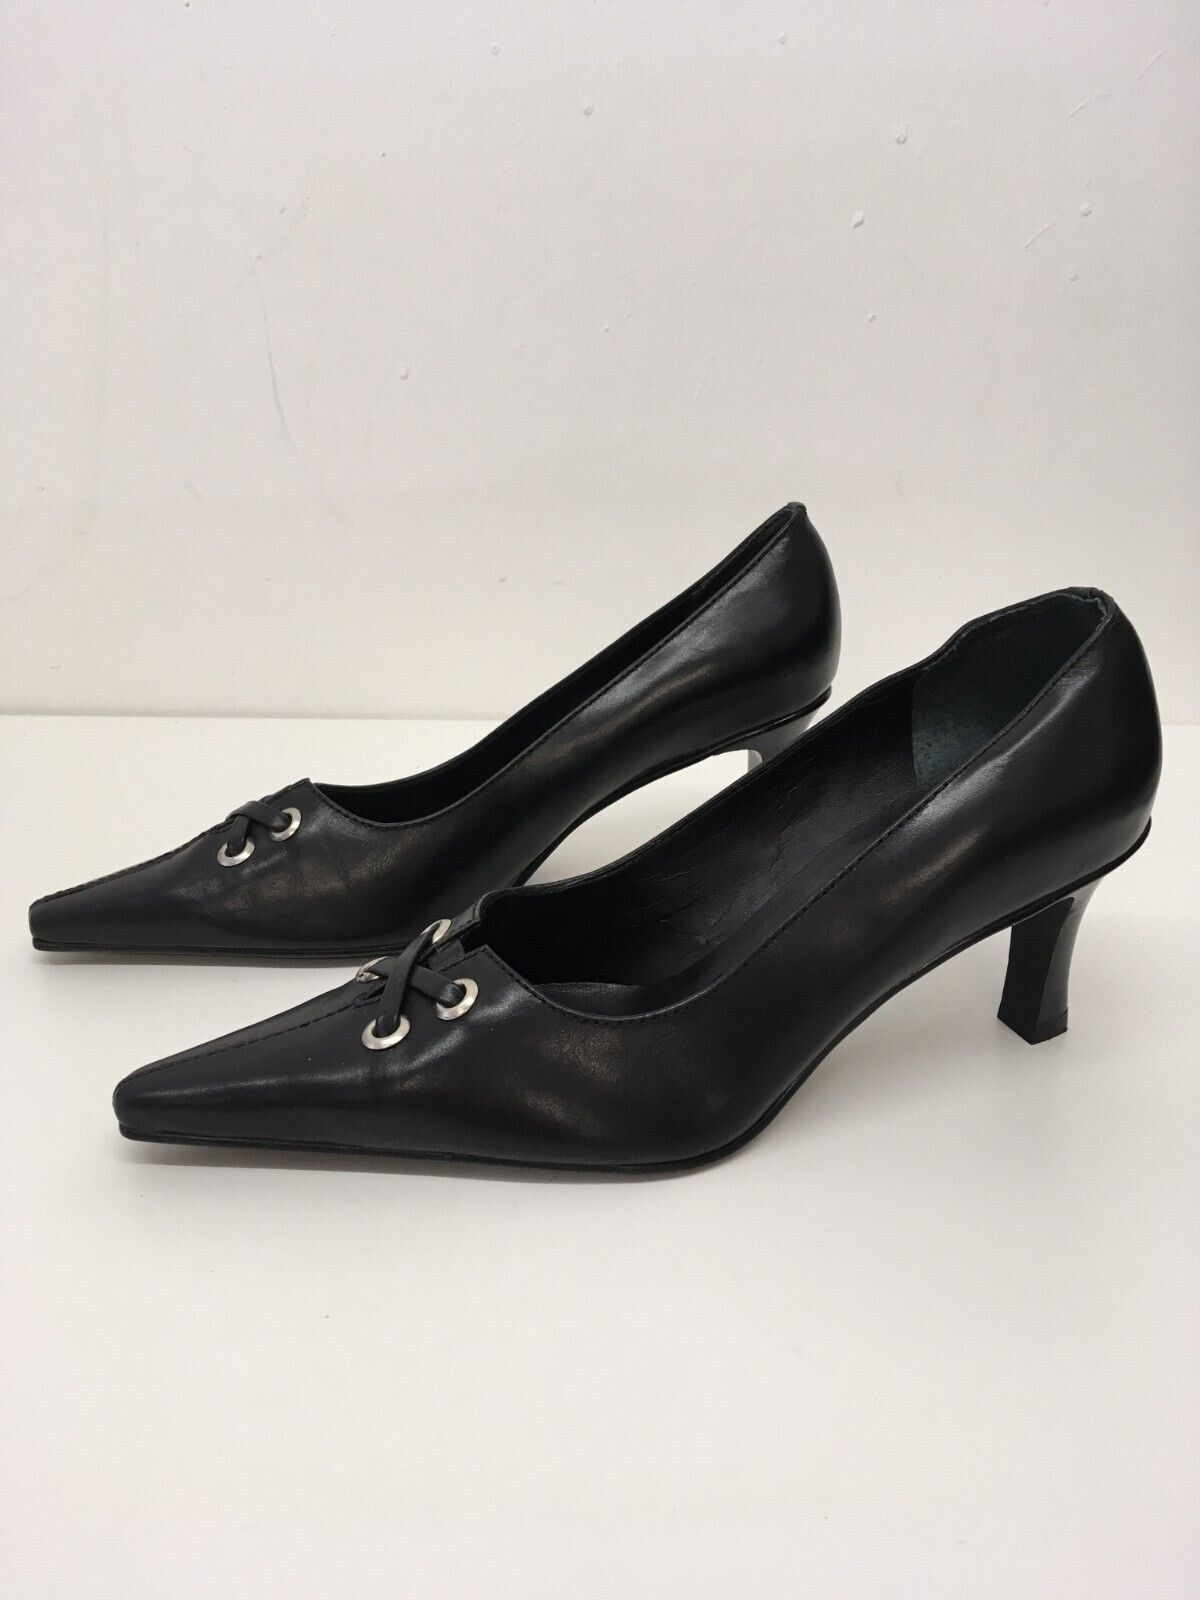 Women's Jane Shilton Black Leather Slip On High Heel Pointed Toe Shoes Size UK 6